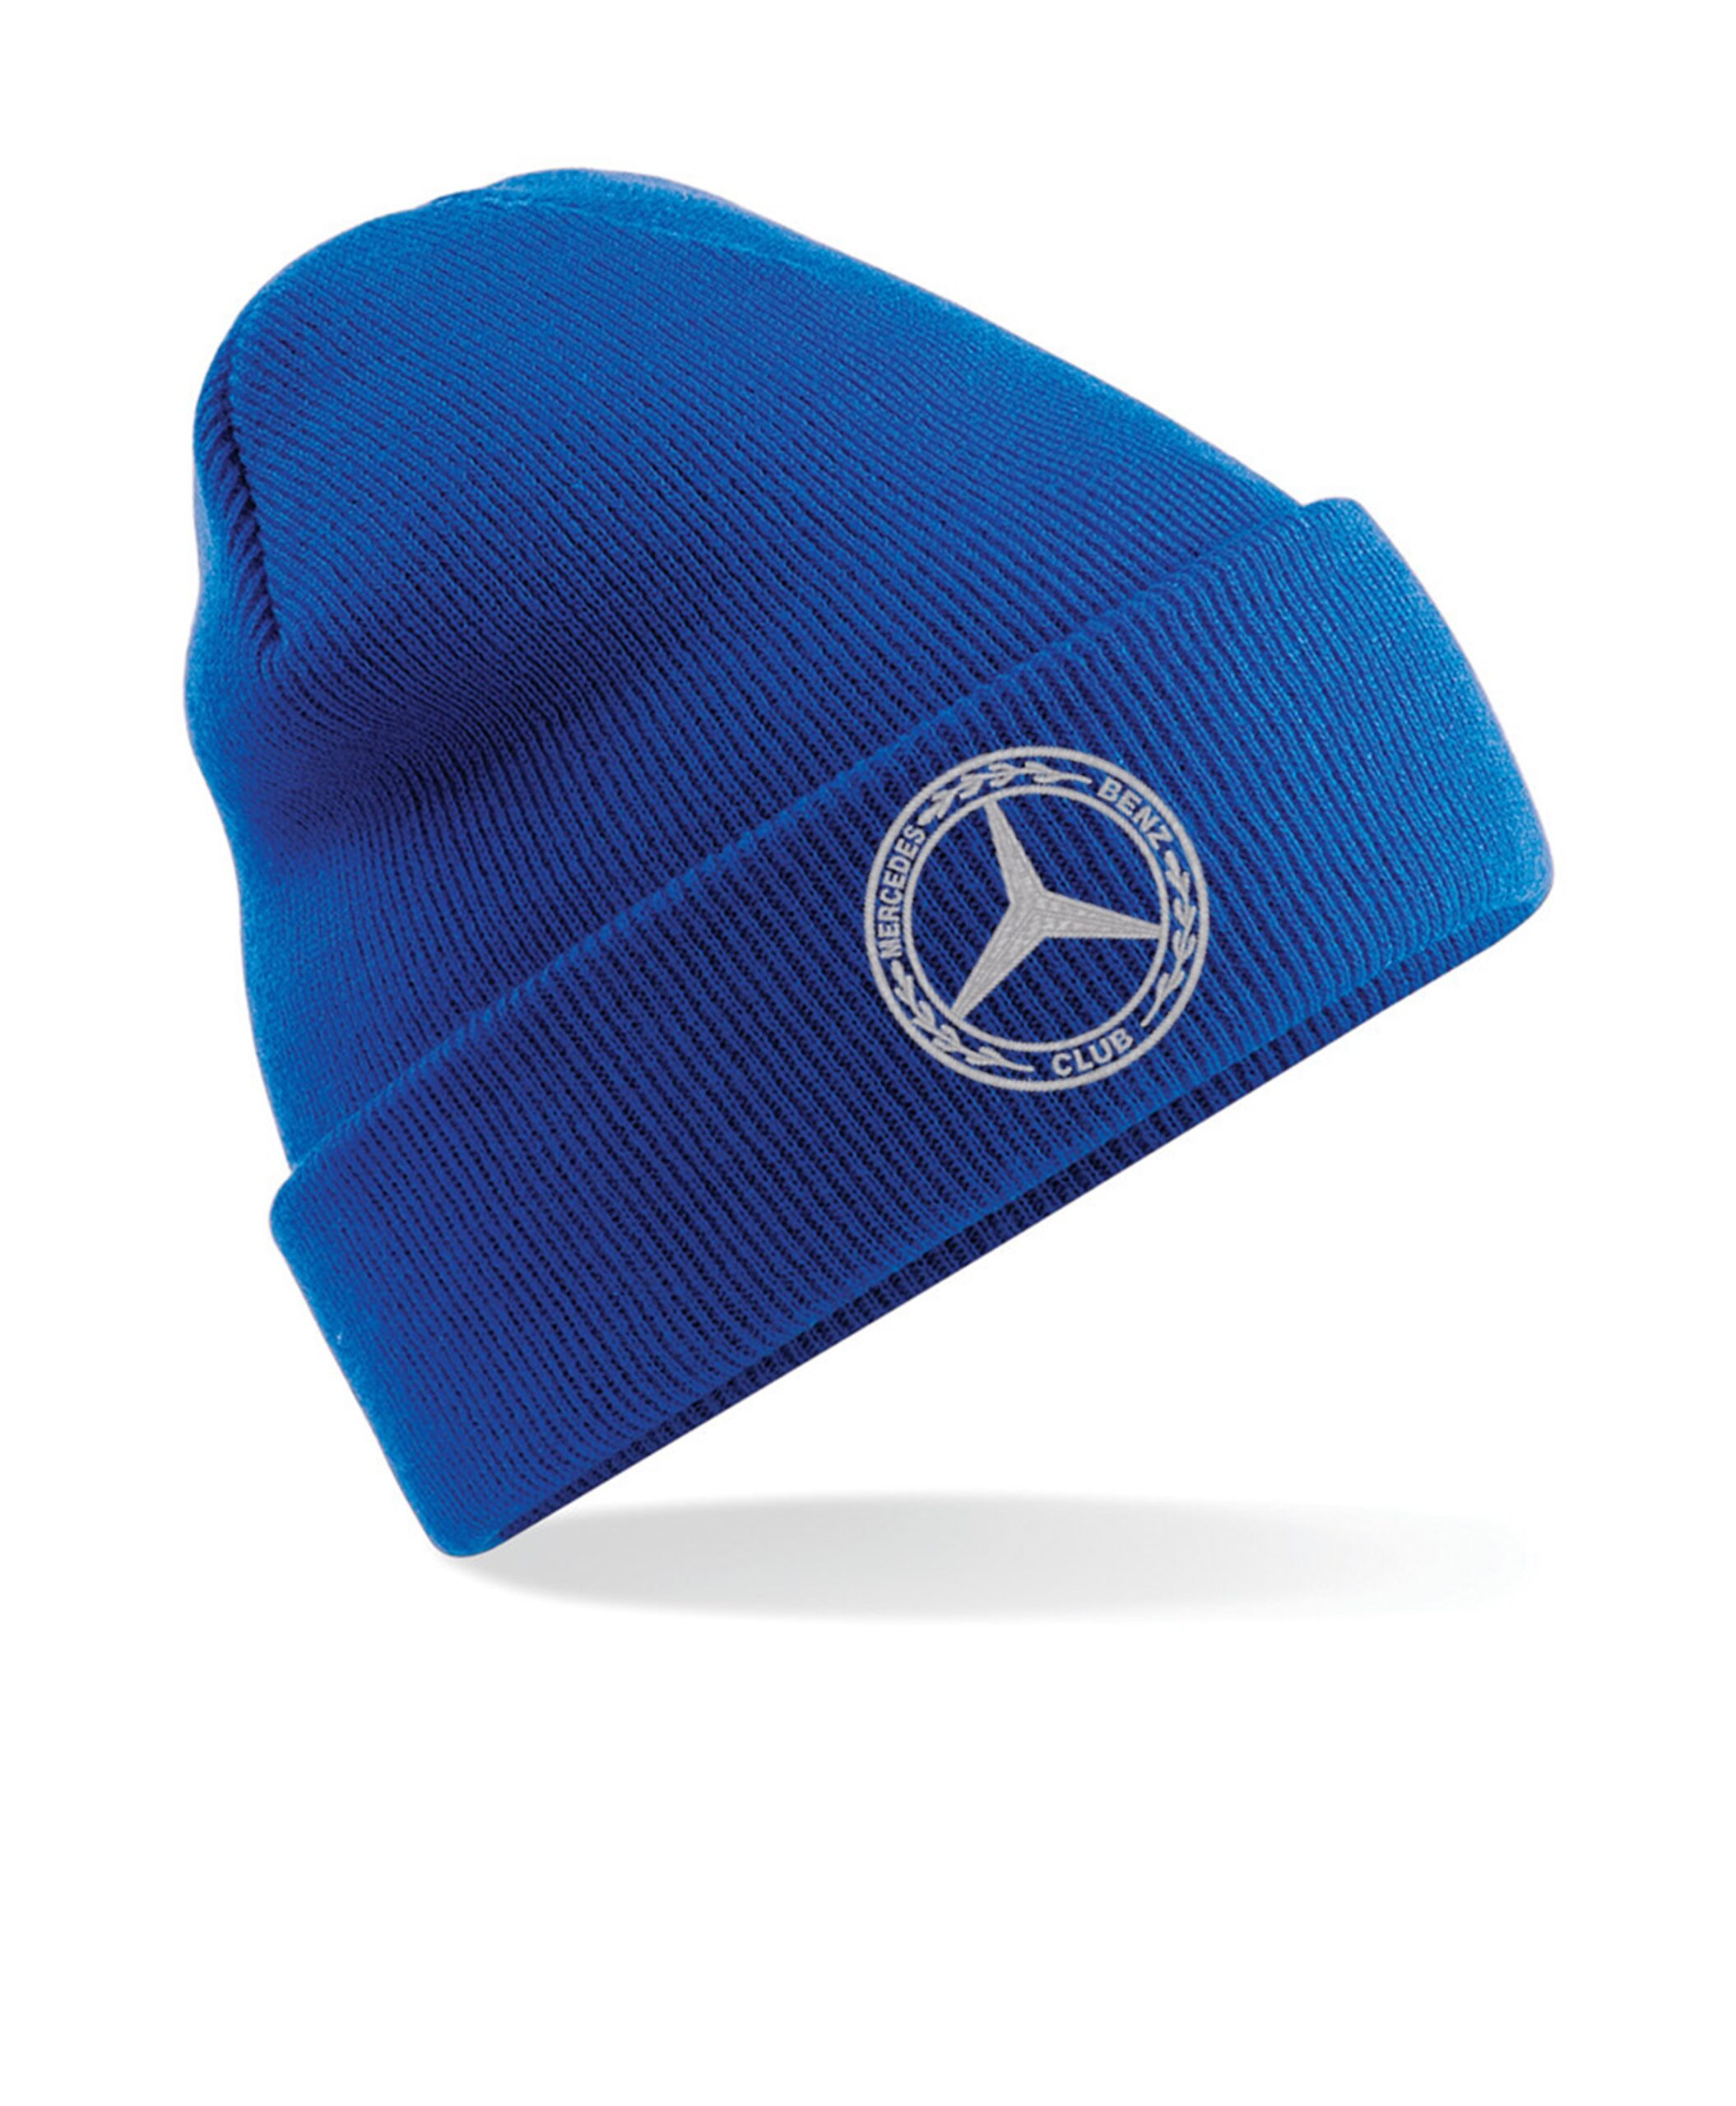 Mercedes-Benz Club Unisex Woolly Beanie Hat